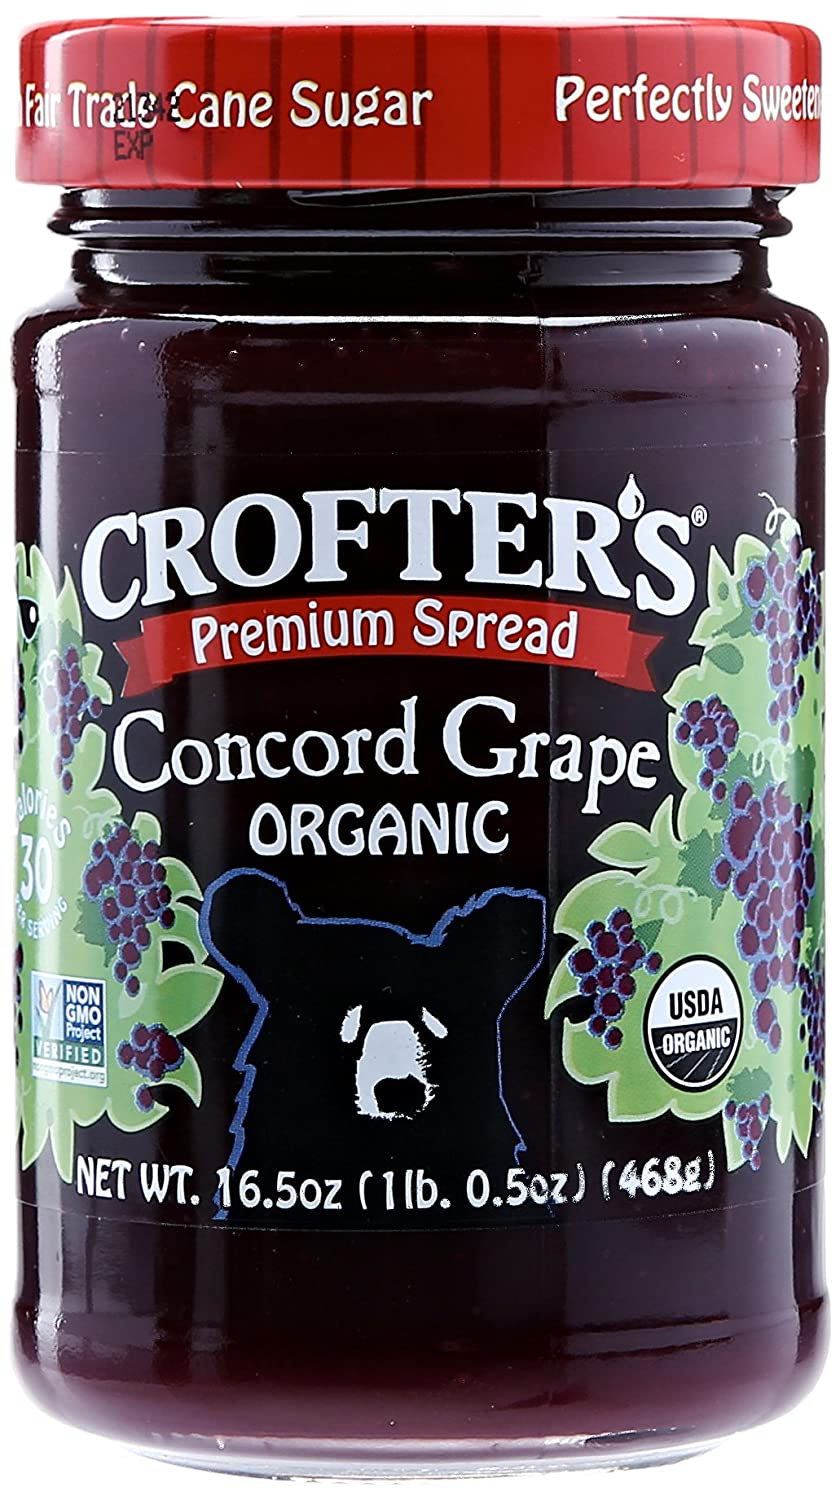 Crofters Organic Concord Grape Premium Spread, 16.5 oz